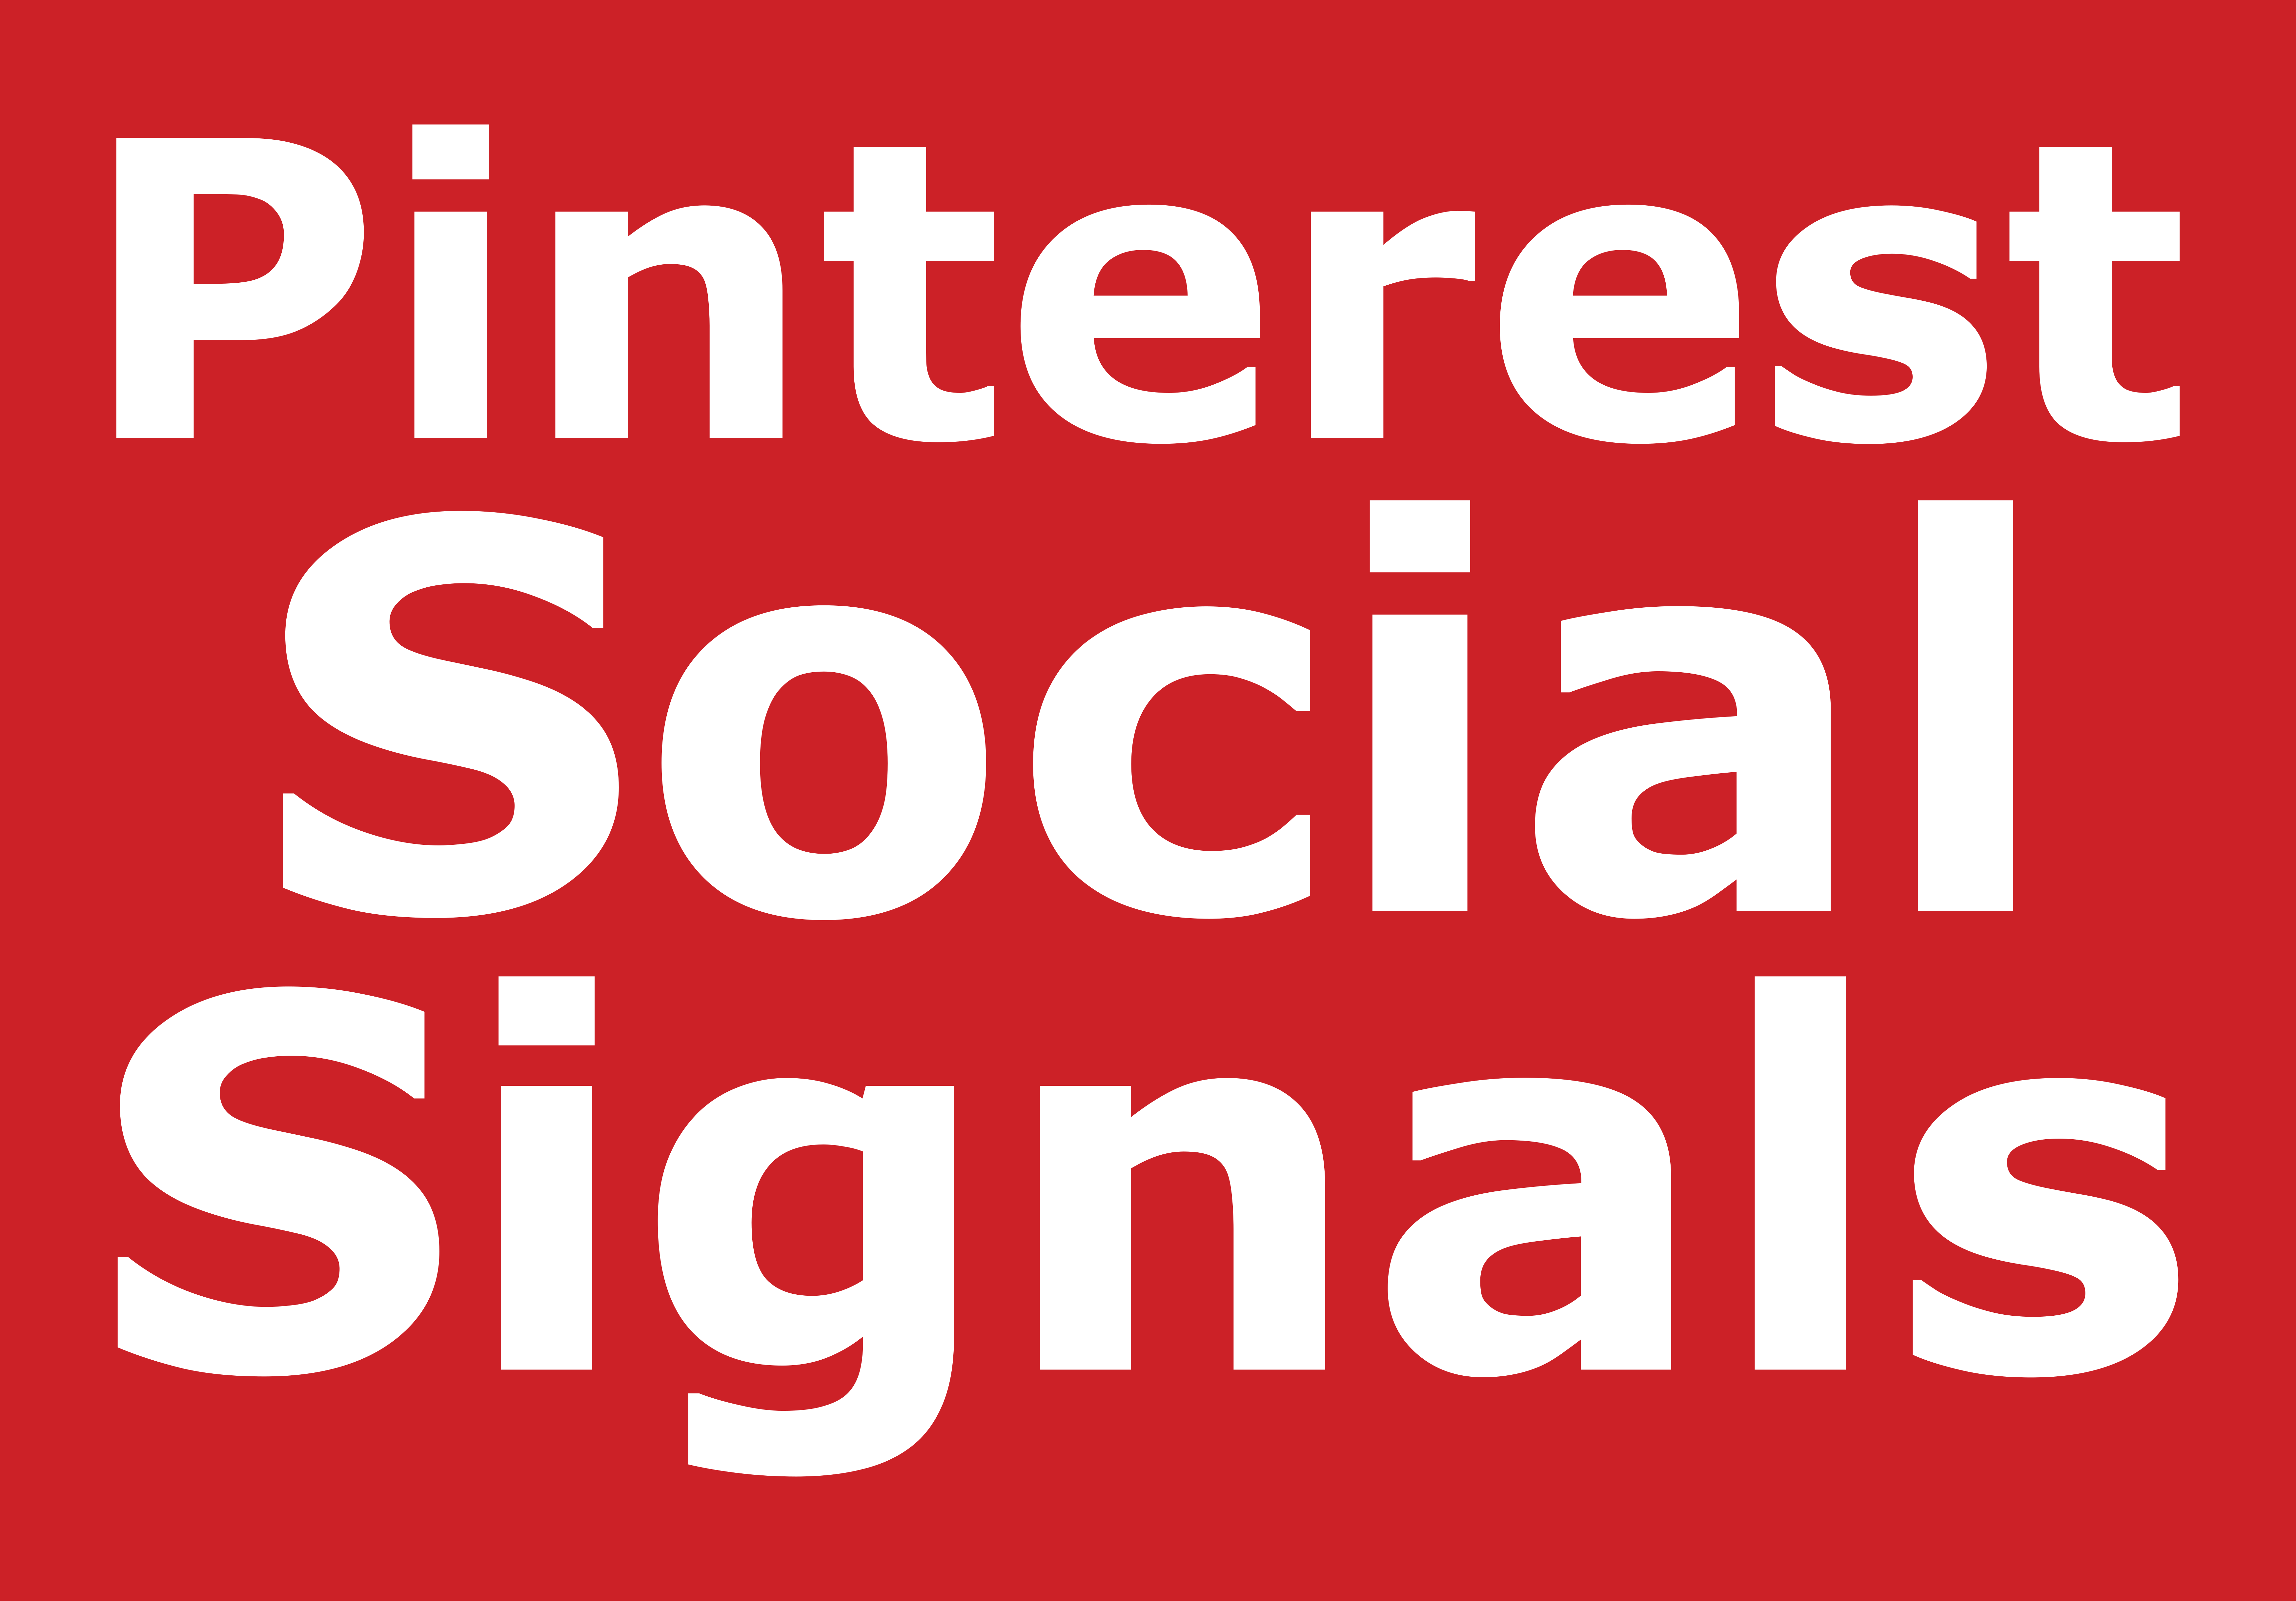 Pinterest Social Signals SEO Boost increase Google Ranking to your website